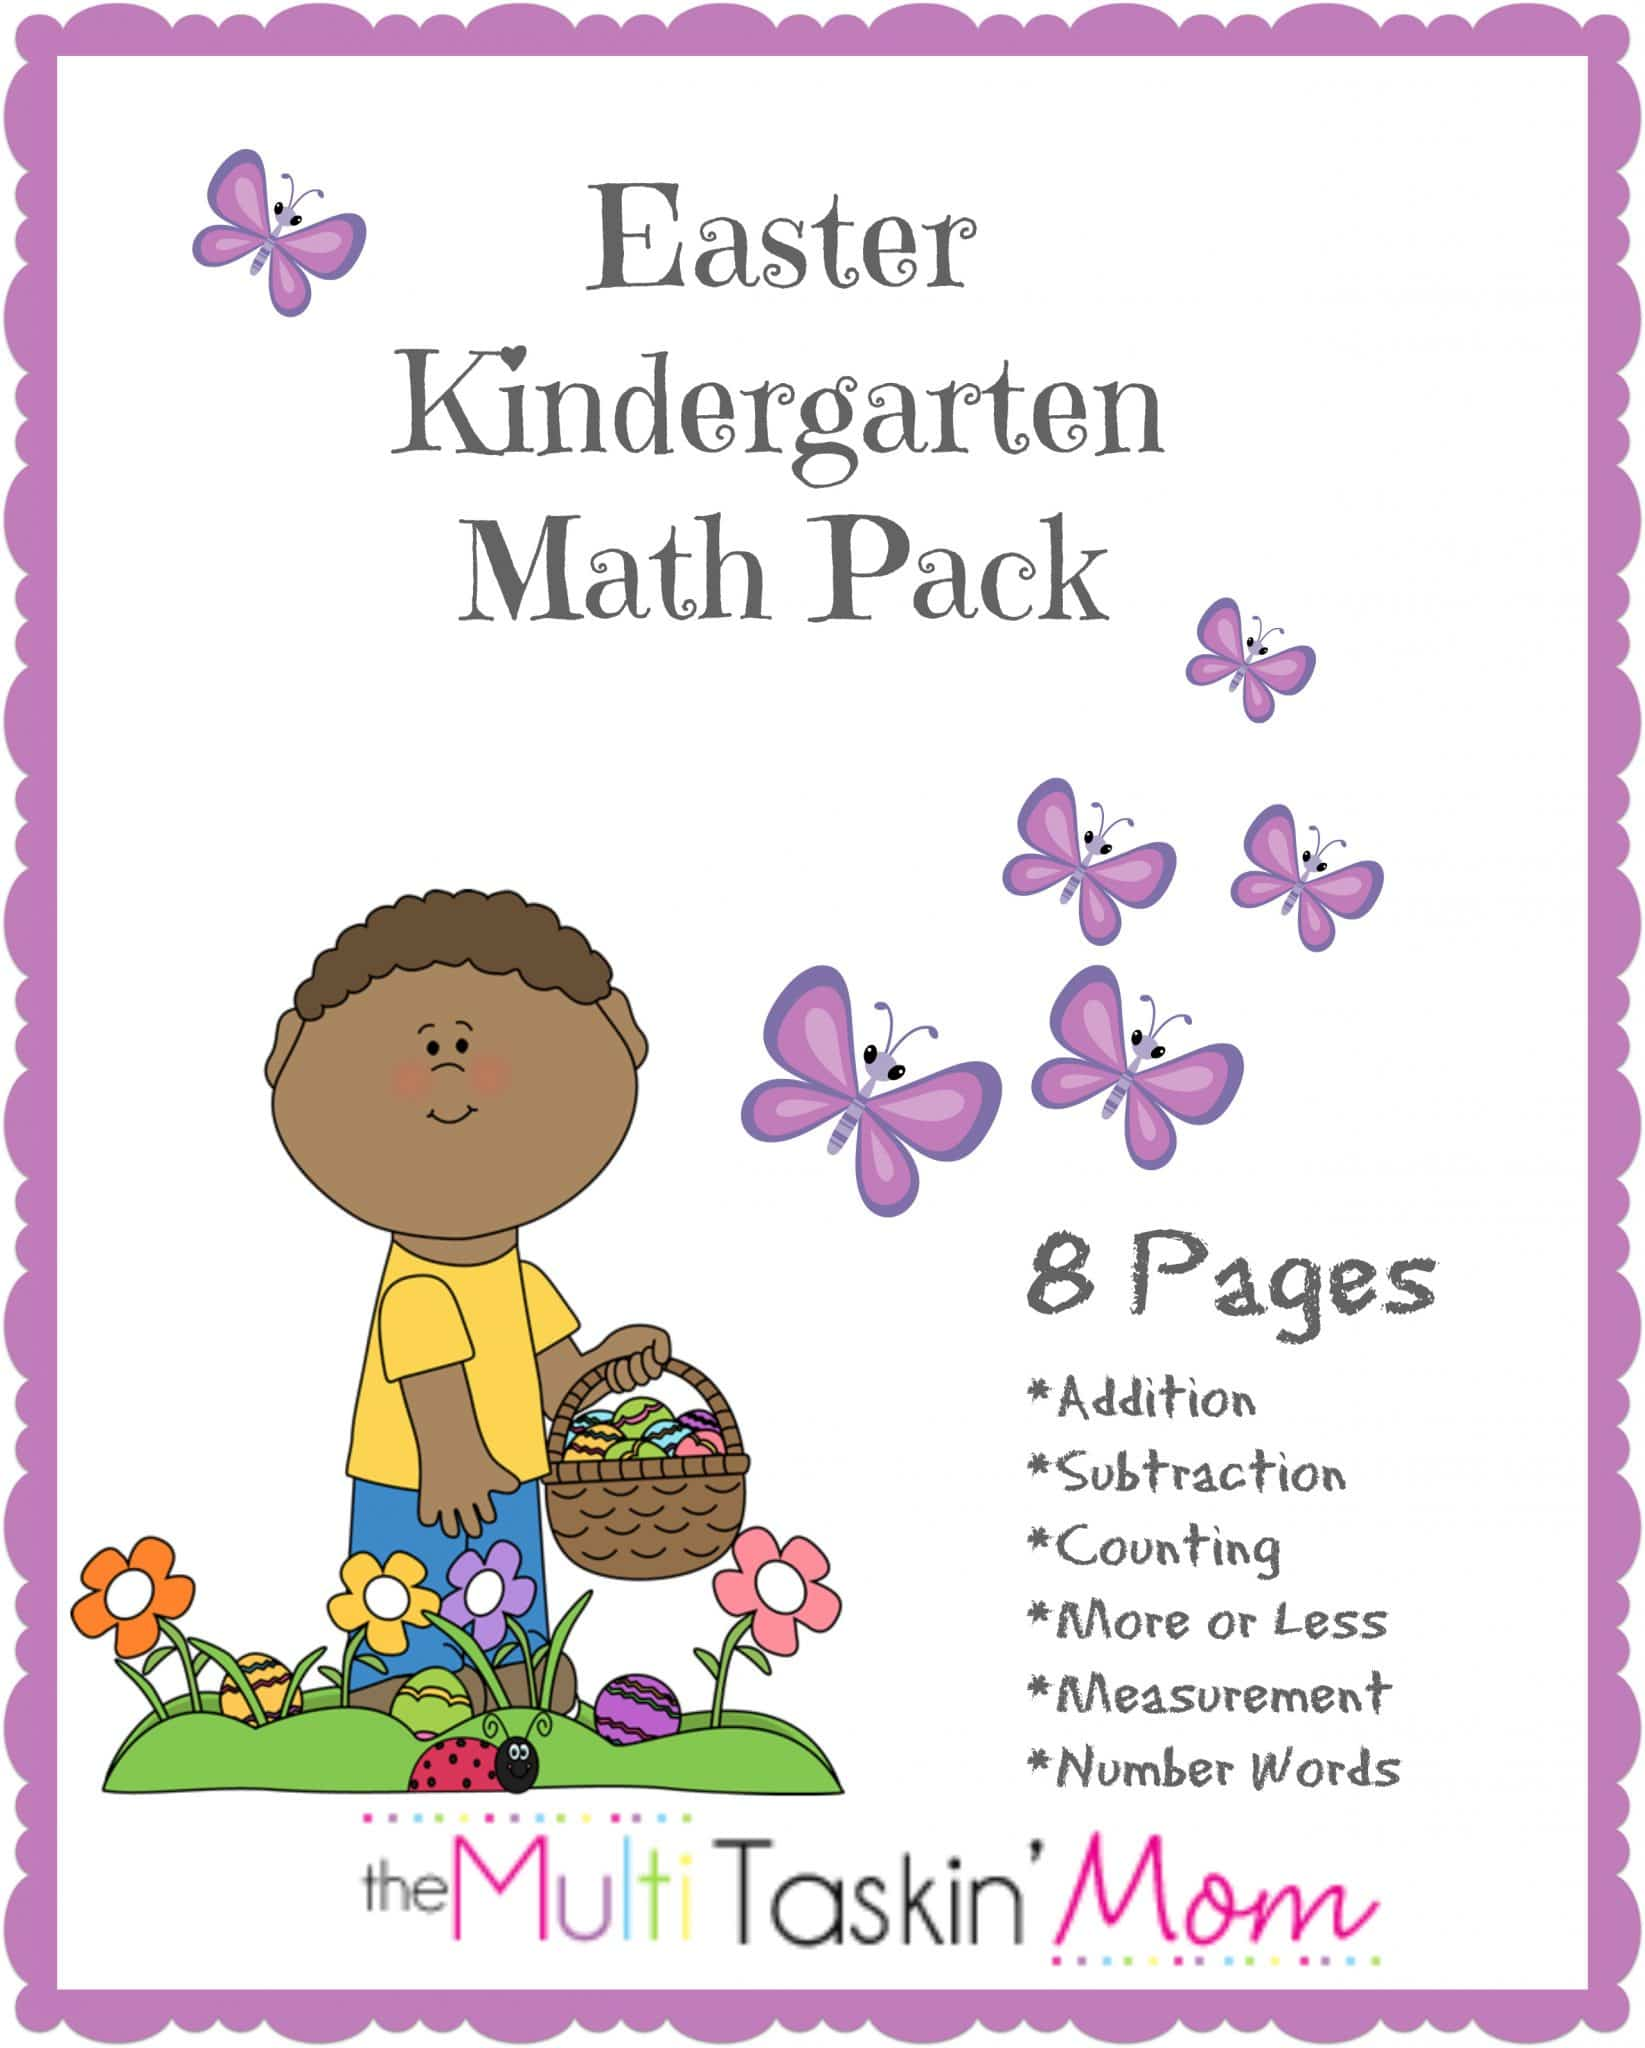 Free Easter Worksheets : Free easter printables kindergarten math pack the